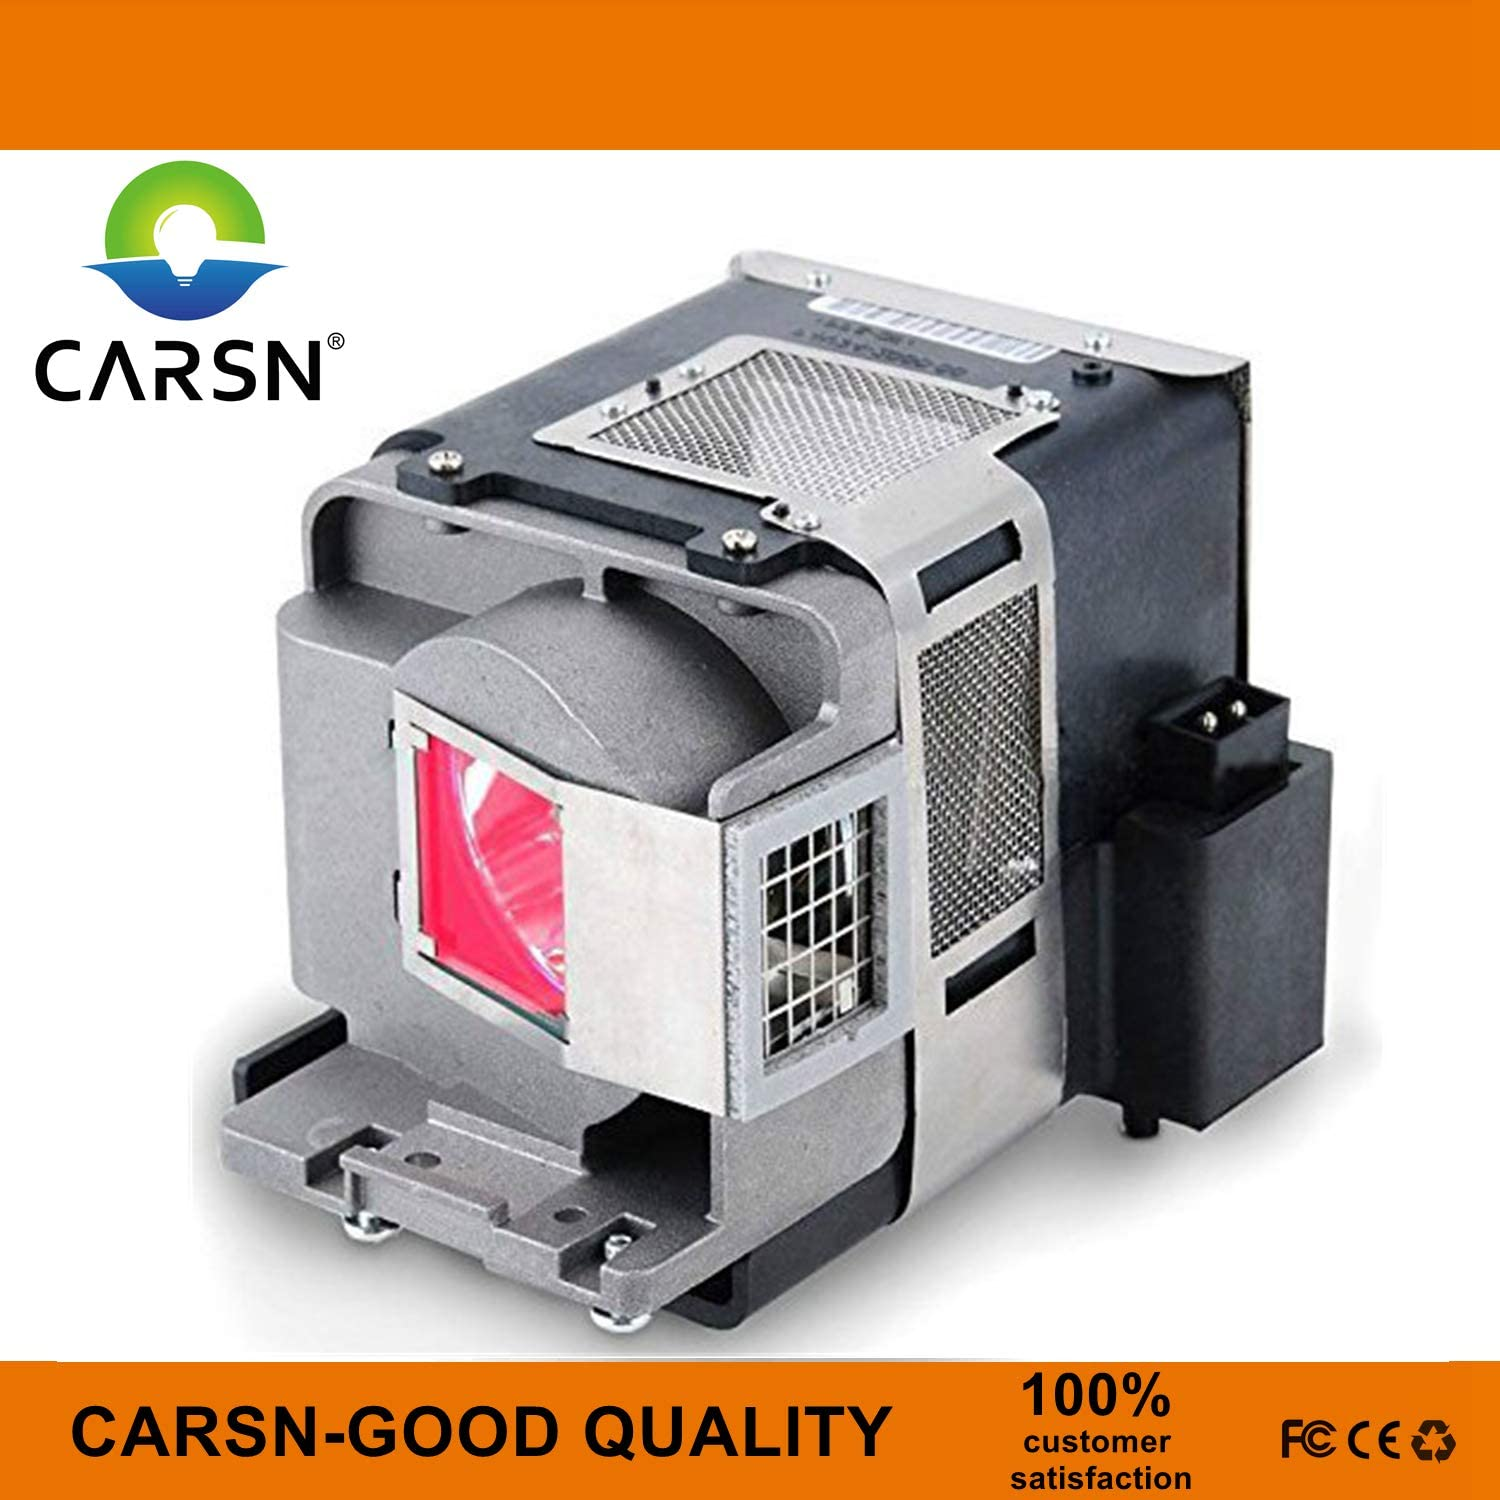 VLT-HC7800LP Replacement Projector Lamp for Mitsubishi HC7800 HC7800D HC7800DW HC7900DW HC8000 HC8000D HC8000D-BL Lamp with Housing by CARSN